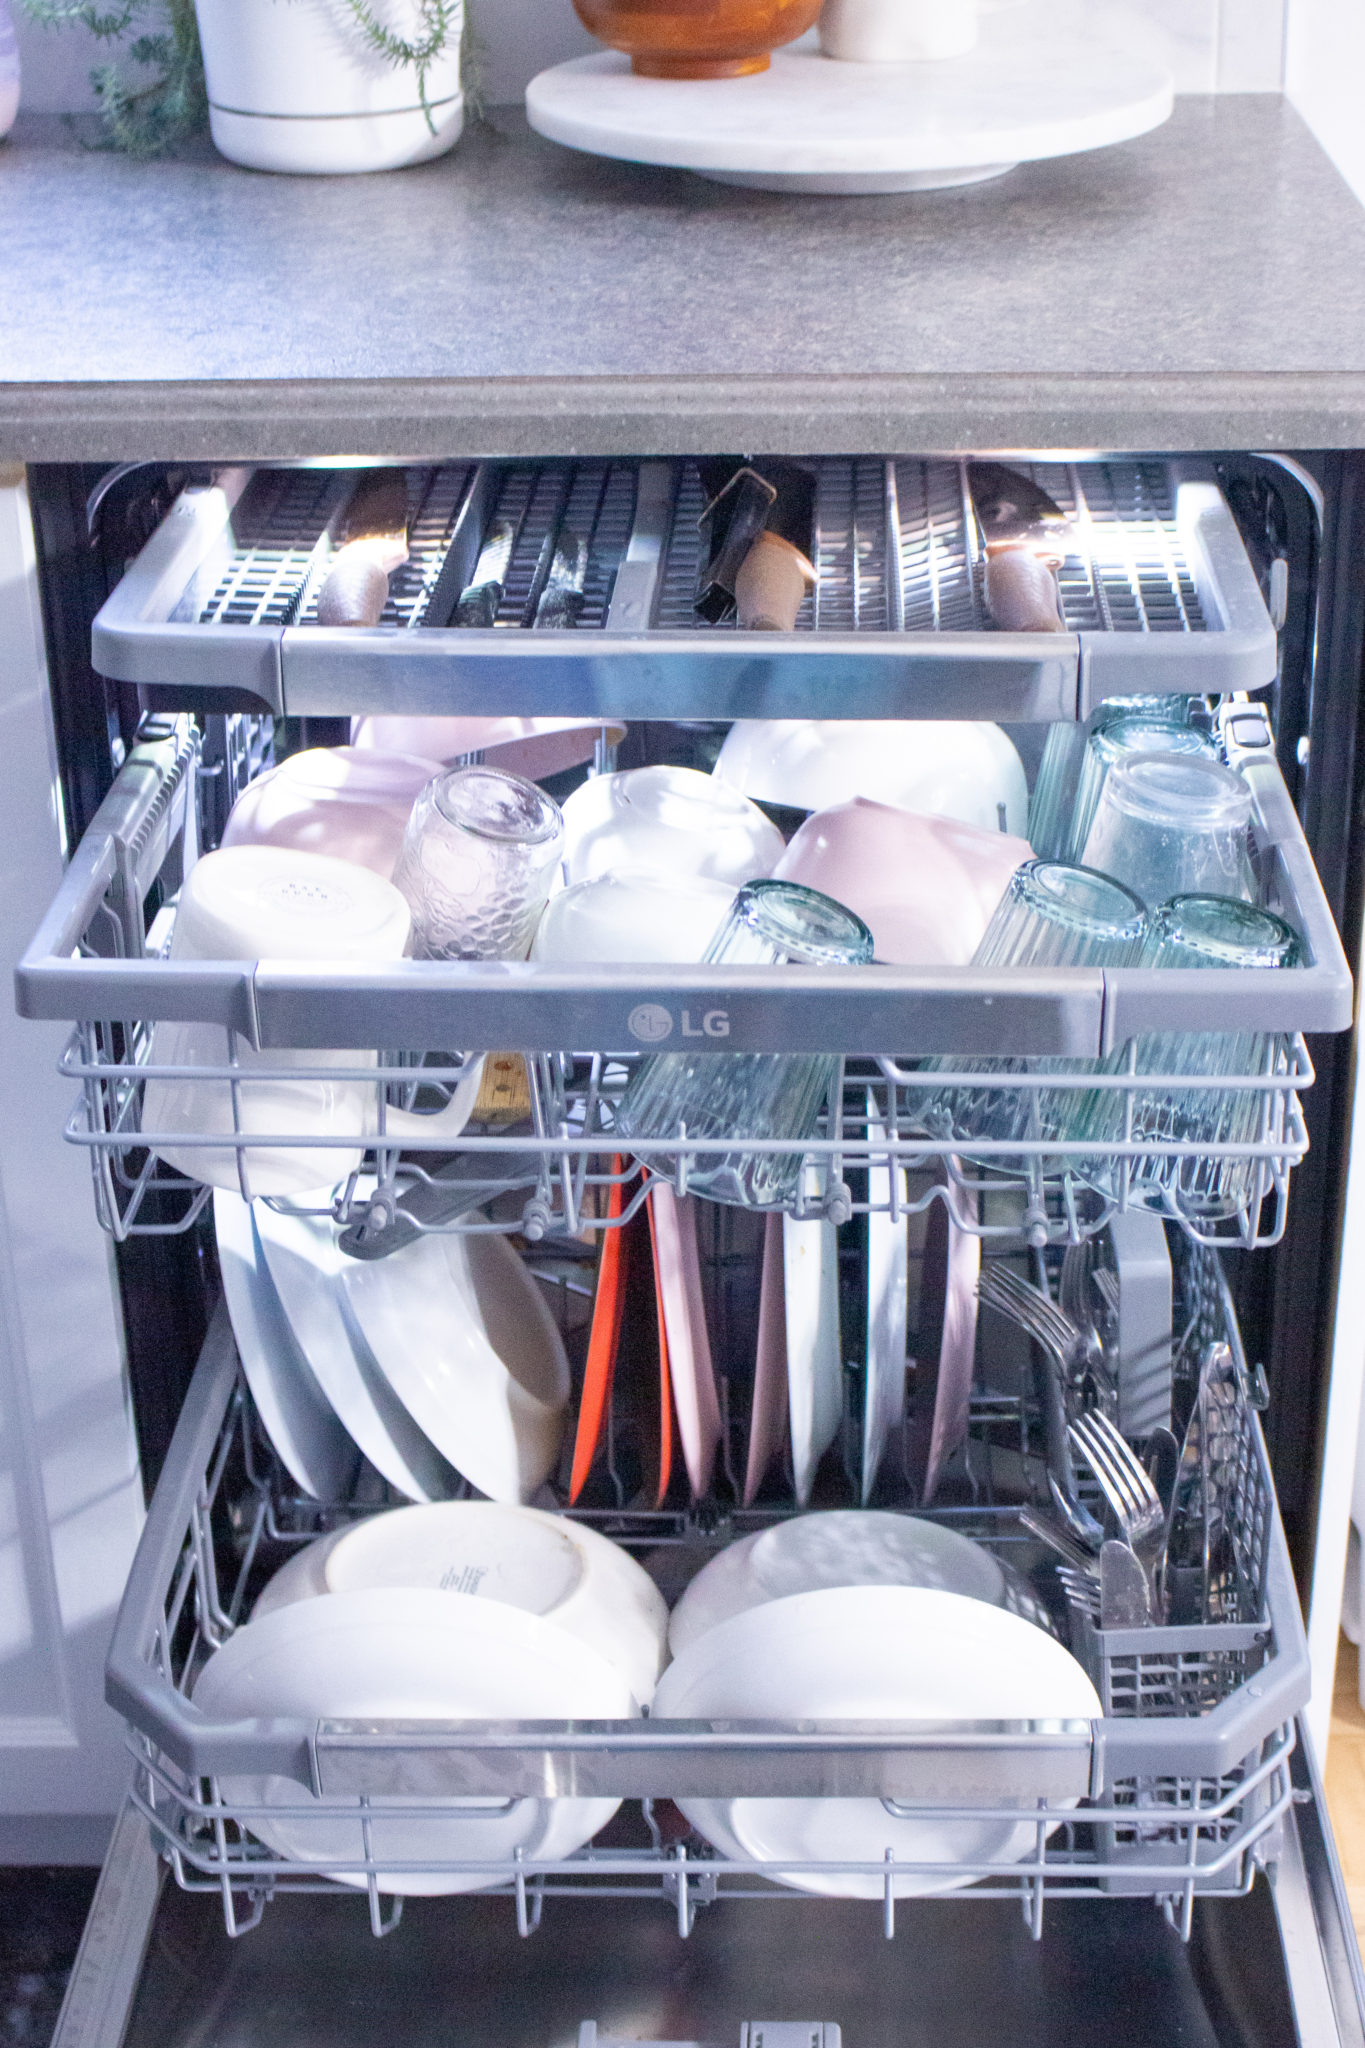 Easy Toddler Chores | LG QuadWash Steam Dishwasher Review